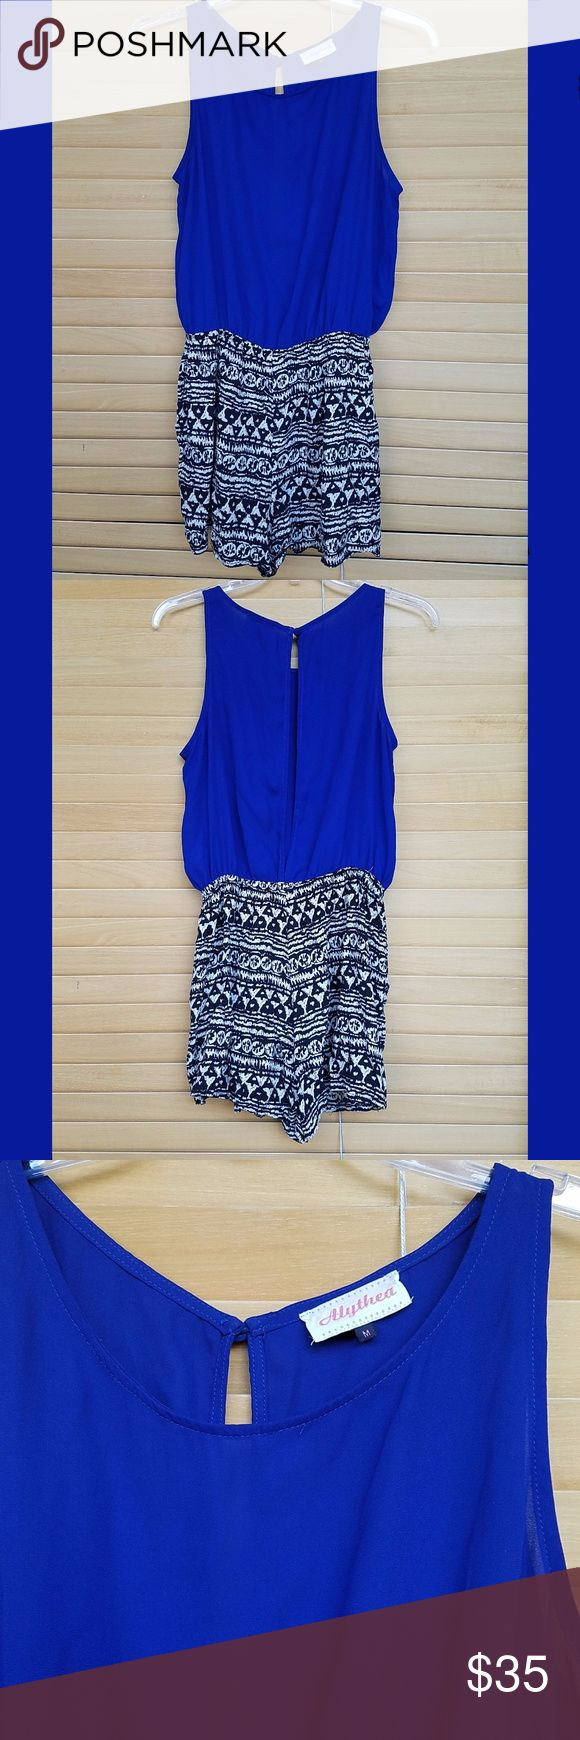 Alythea Sleeveless Romper Unique and trendy romper from Alythea - purchased at a small boutique in Coconut Grove (Miami, FL).  Polyester and Rayon, sheer top with open back and button closure at the top.  The top and bottom are connected by an elastic waistband.  The bottom are flowy shorts with a cool tribal-ish pattern.  It's been worn twice and is in great condition. Alythea Pants Jumpsuits & Rompers